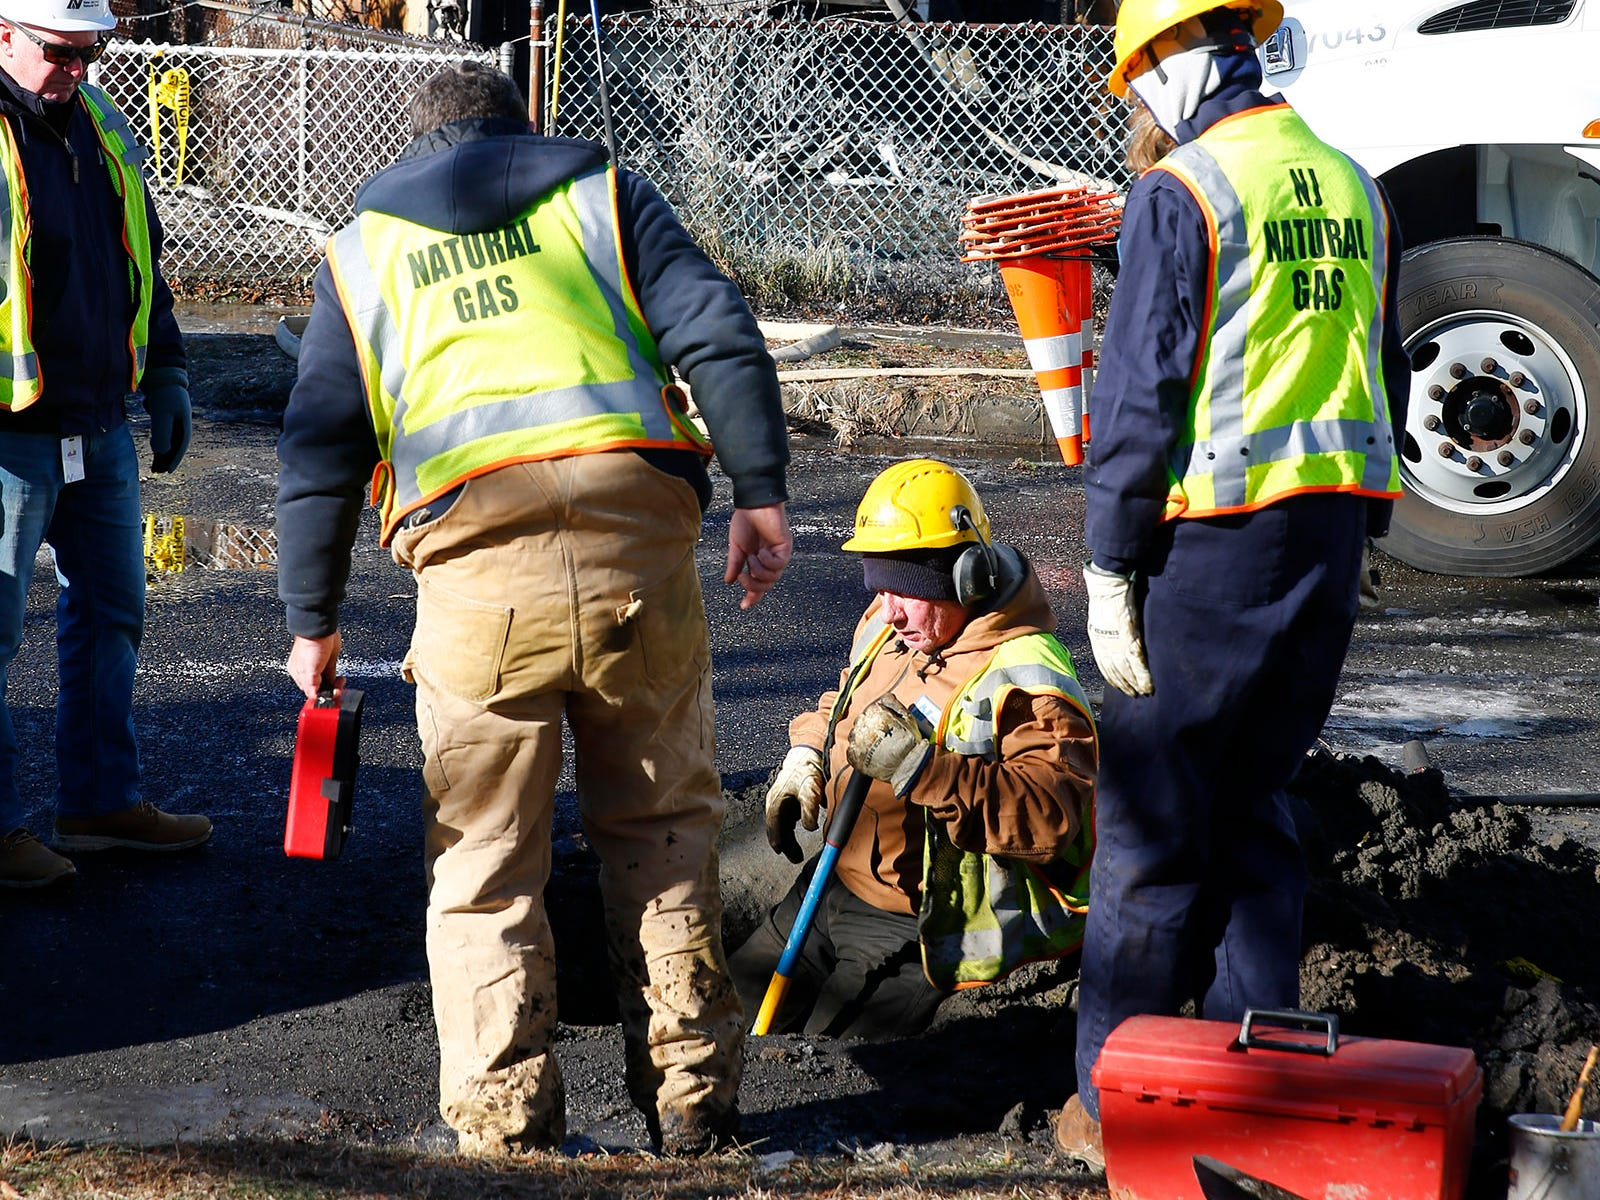 A New Jersey Natural Gas crew works on lines in front of a Cottage Place home in Keansburg Tuesday morning, January 22, 2019, that was gutted by a fire.